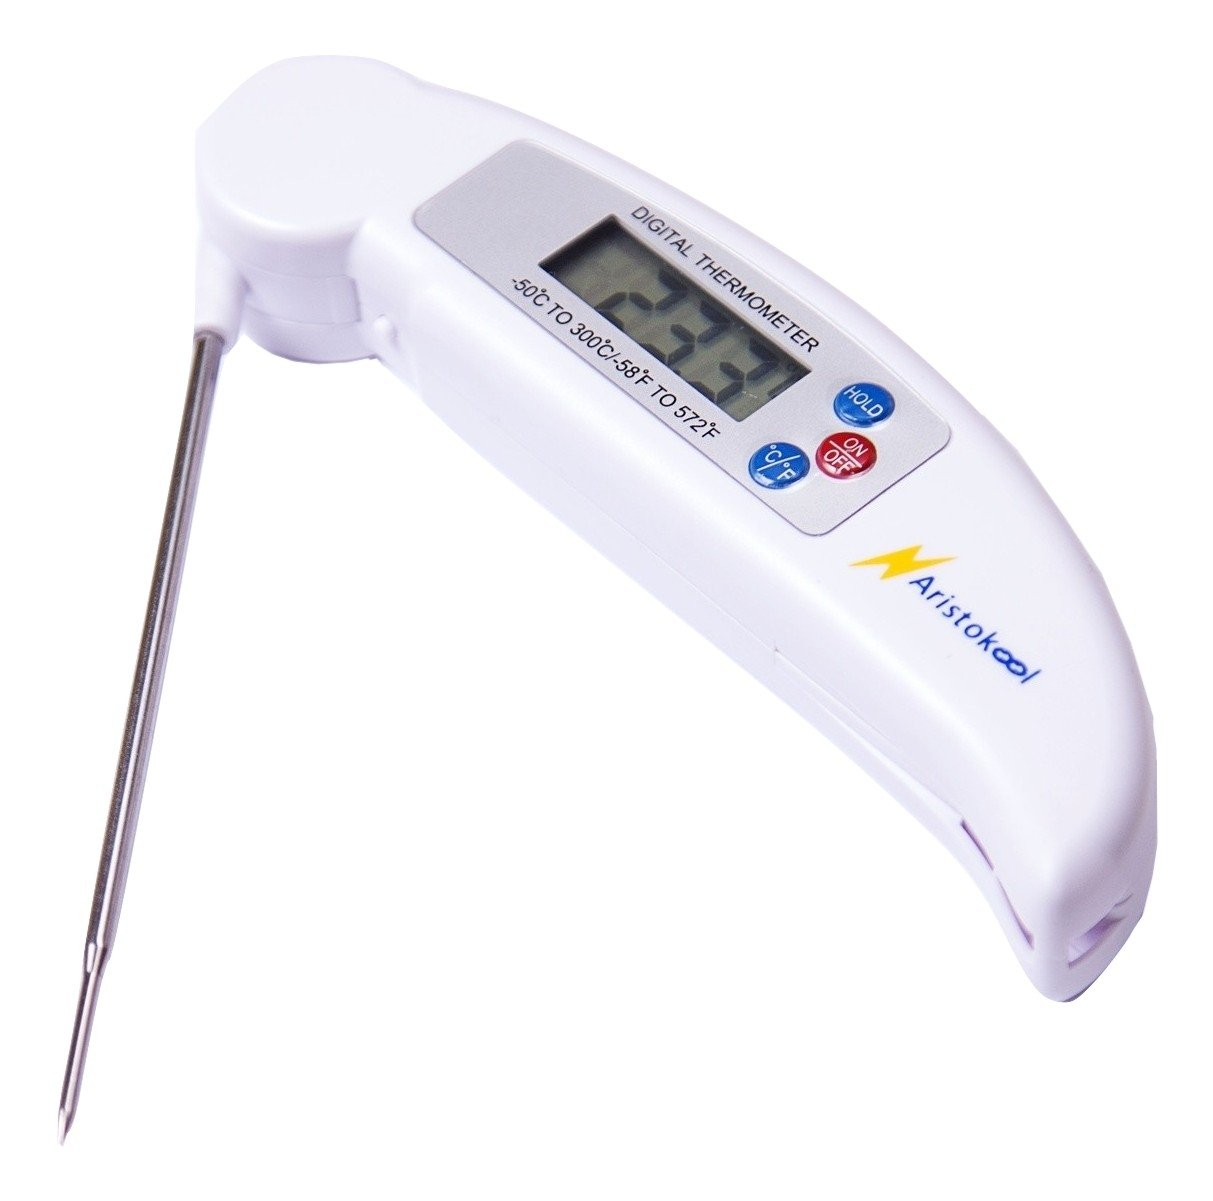 Aristokool Fast Accurate Digital Meat Thermometer - Instant Read High Performance BBQ Food